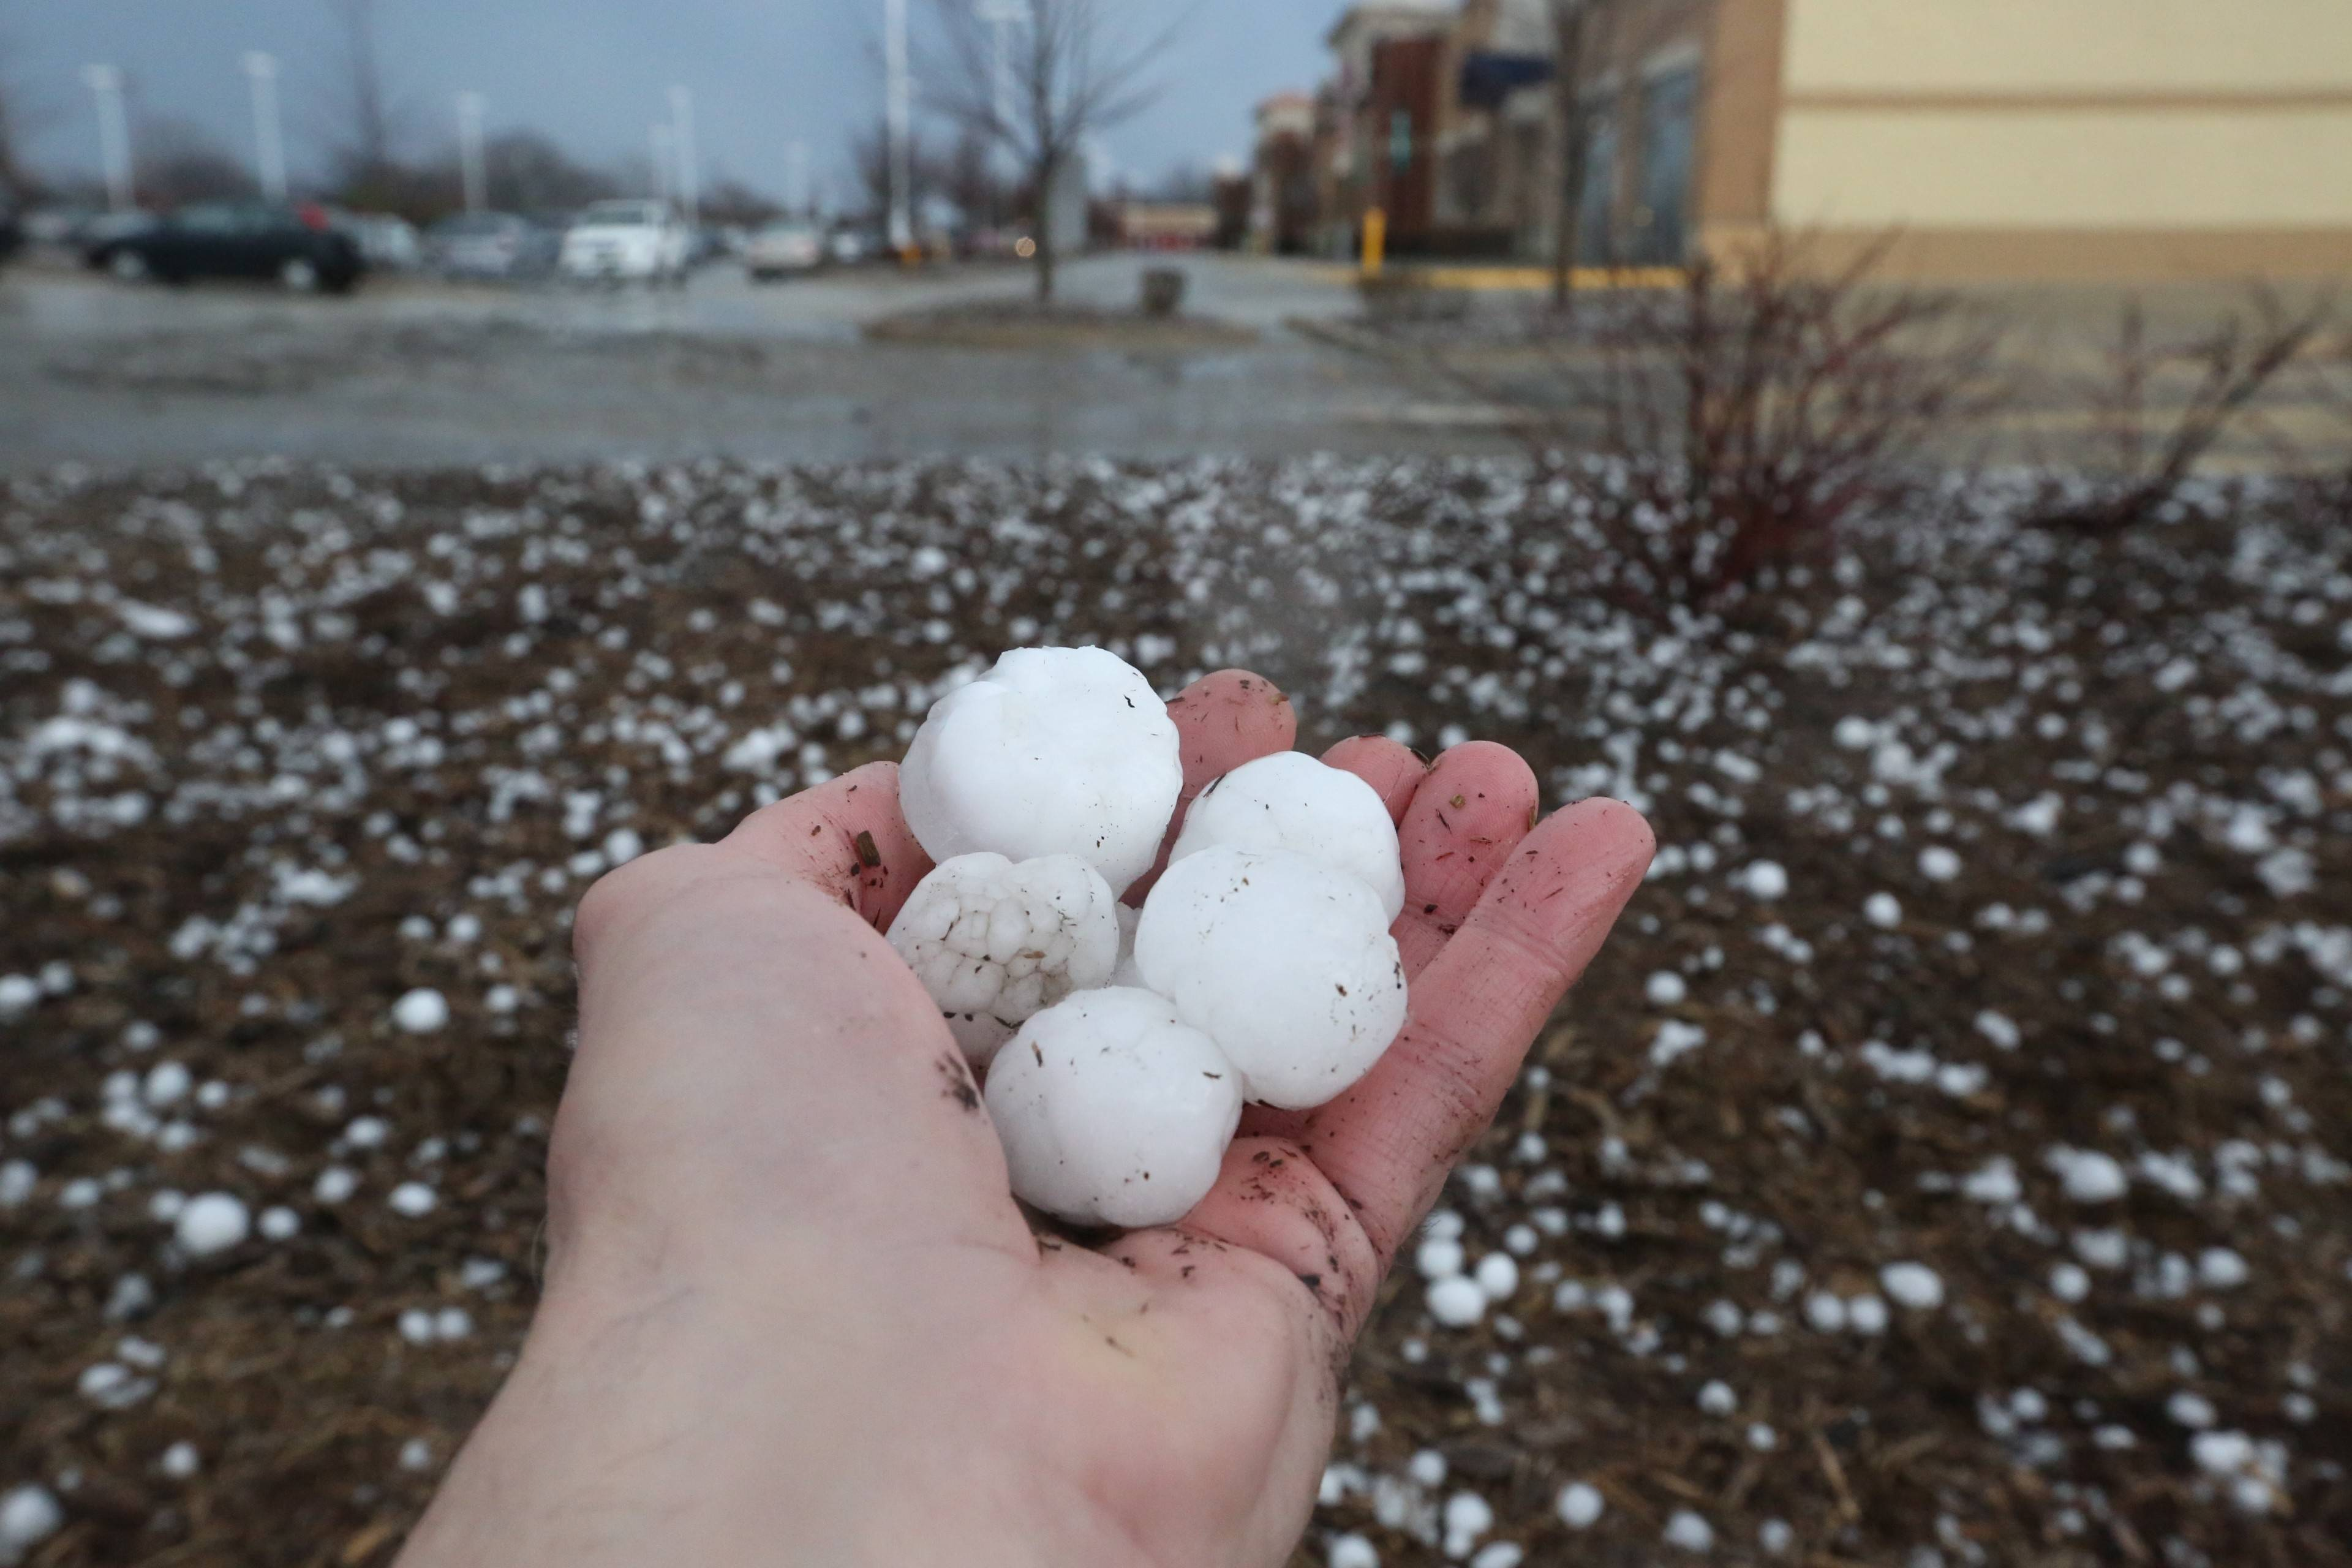 Lake Zurich was hit by large hail stones Saturday morning.